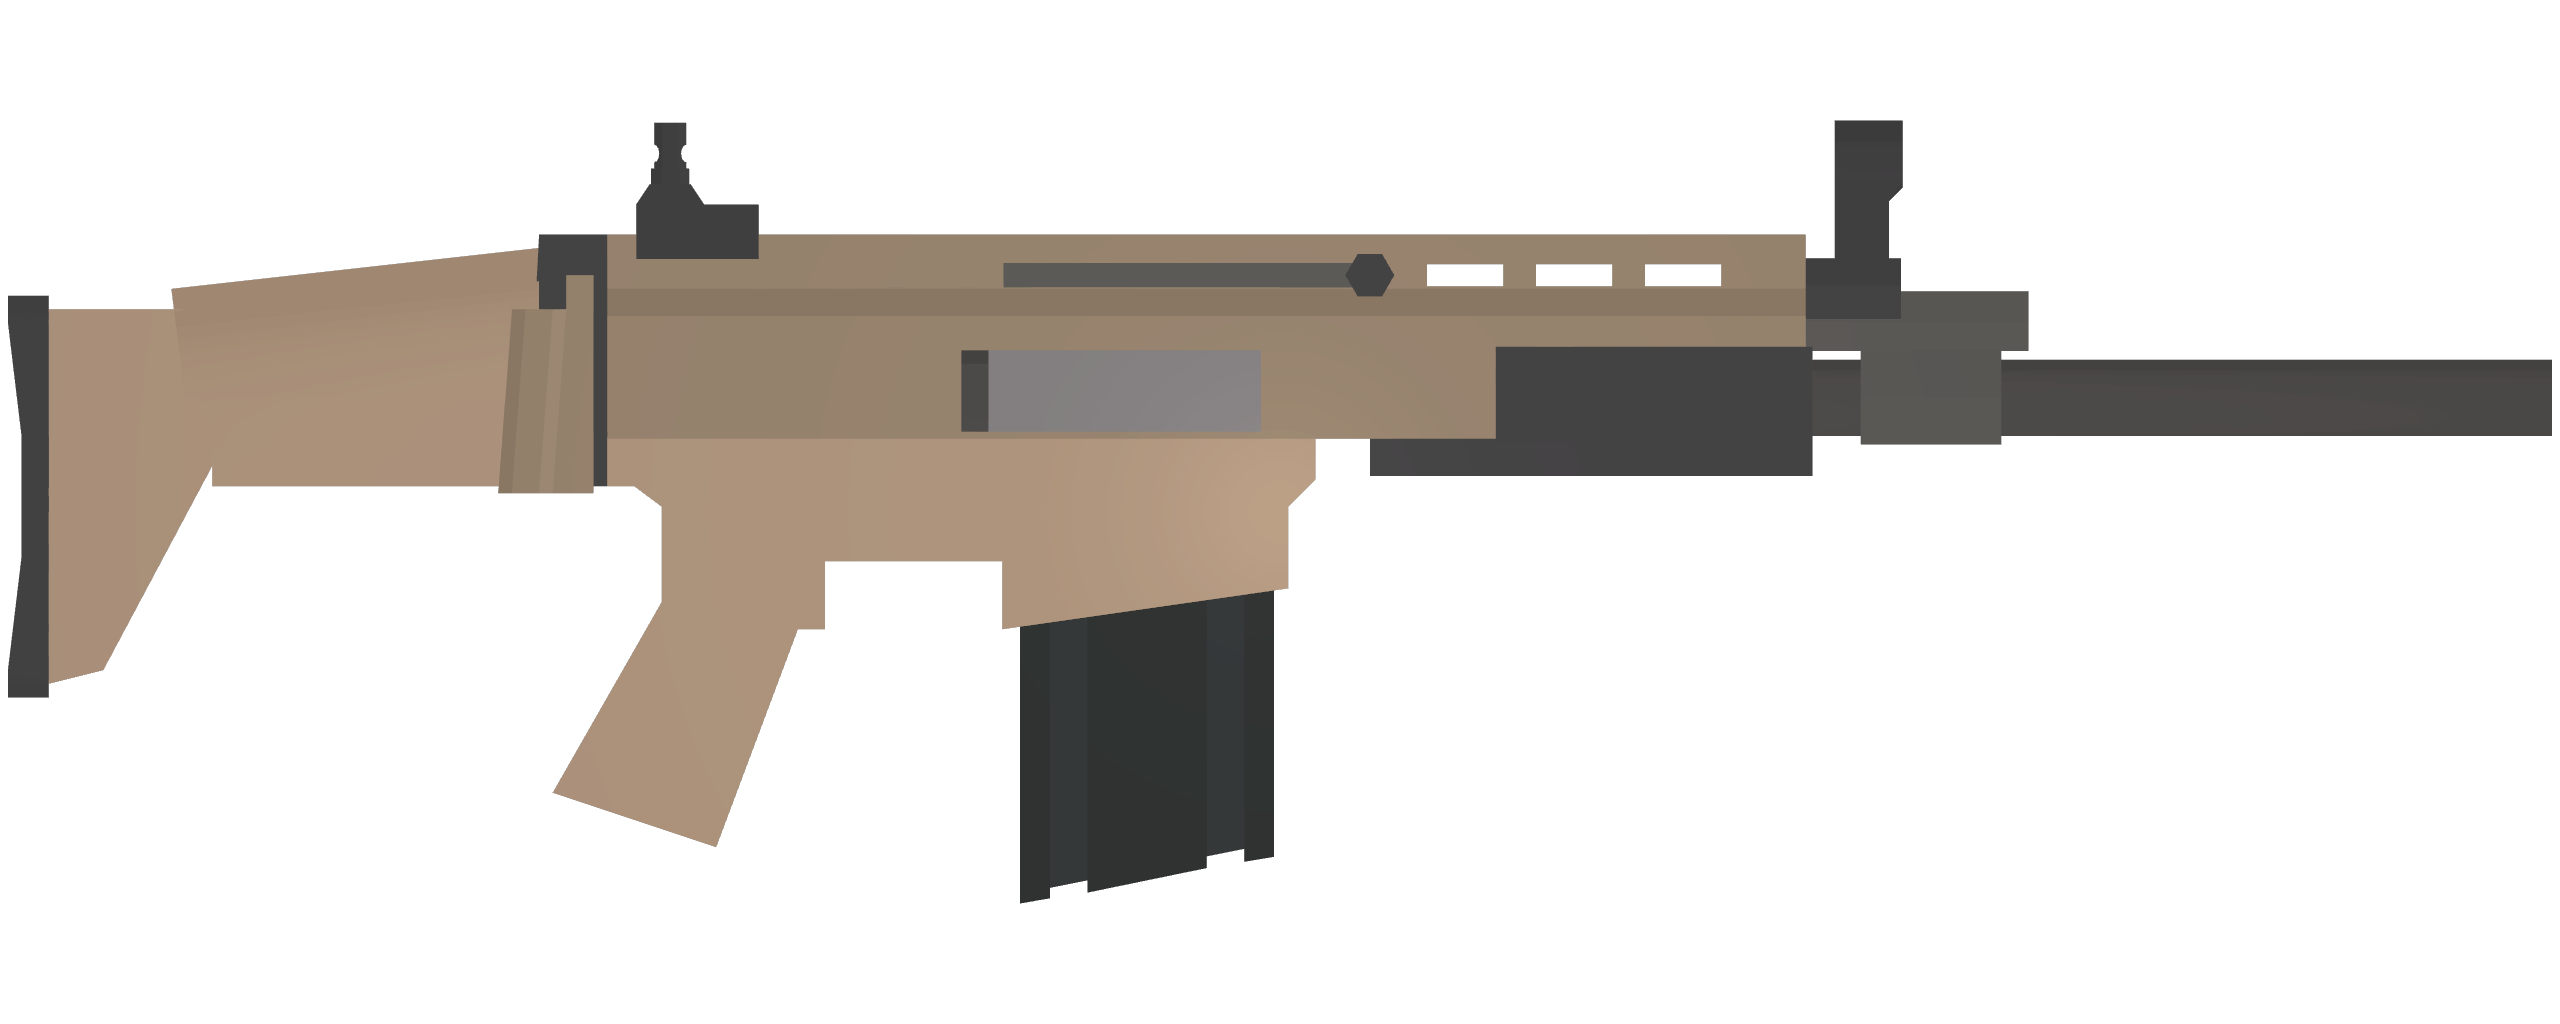 Unturned - All Weapons ID's for Uncreated Warfare Mods - USA Weapons - 4FD3E7B